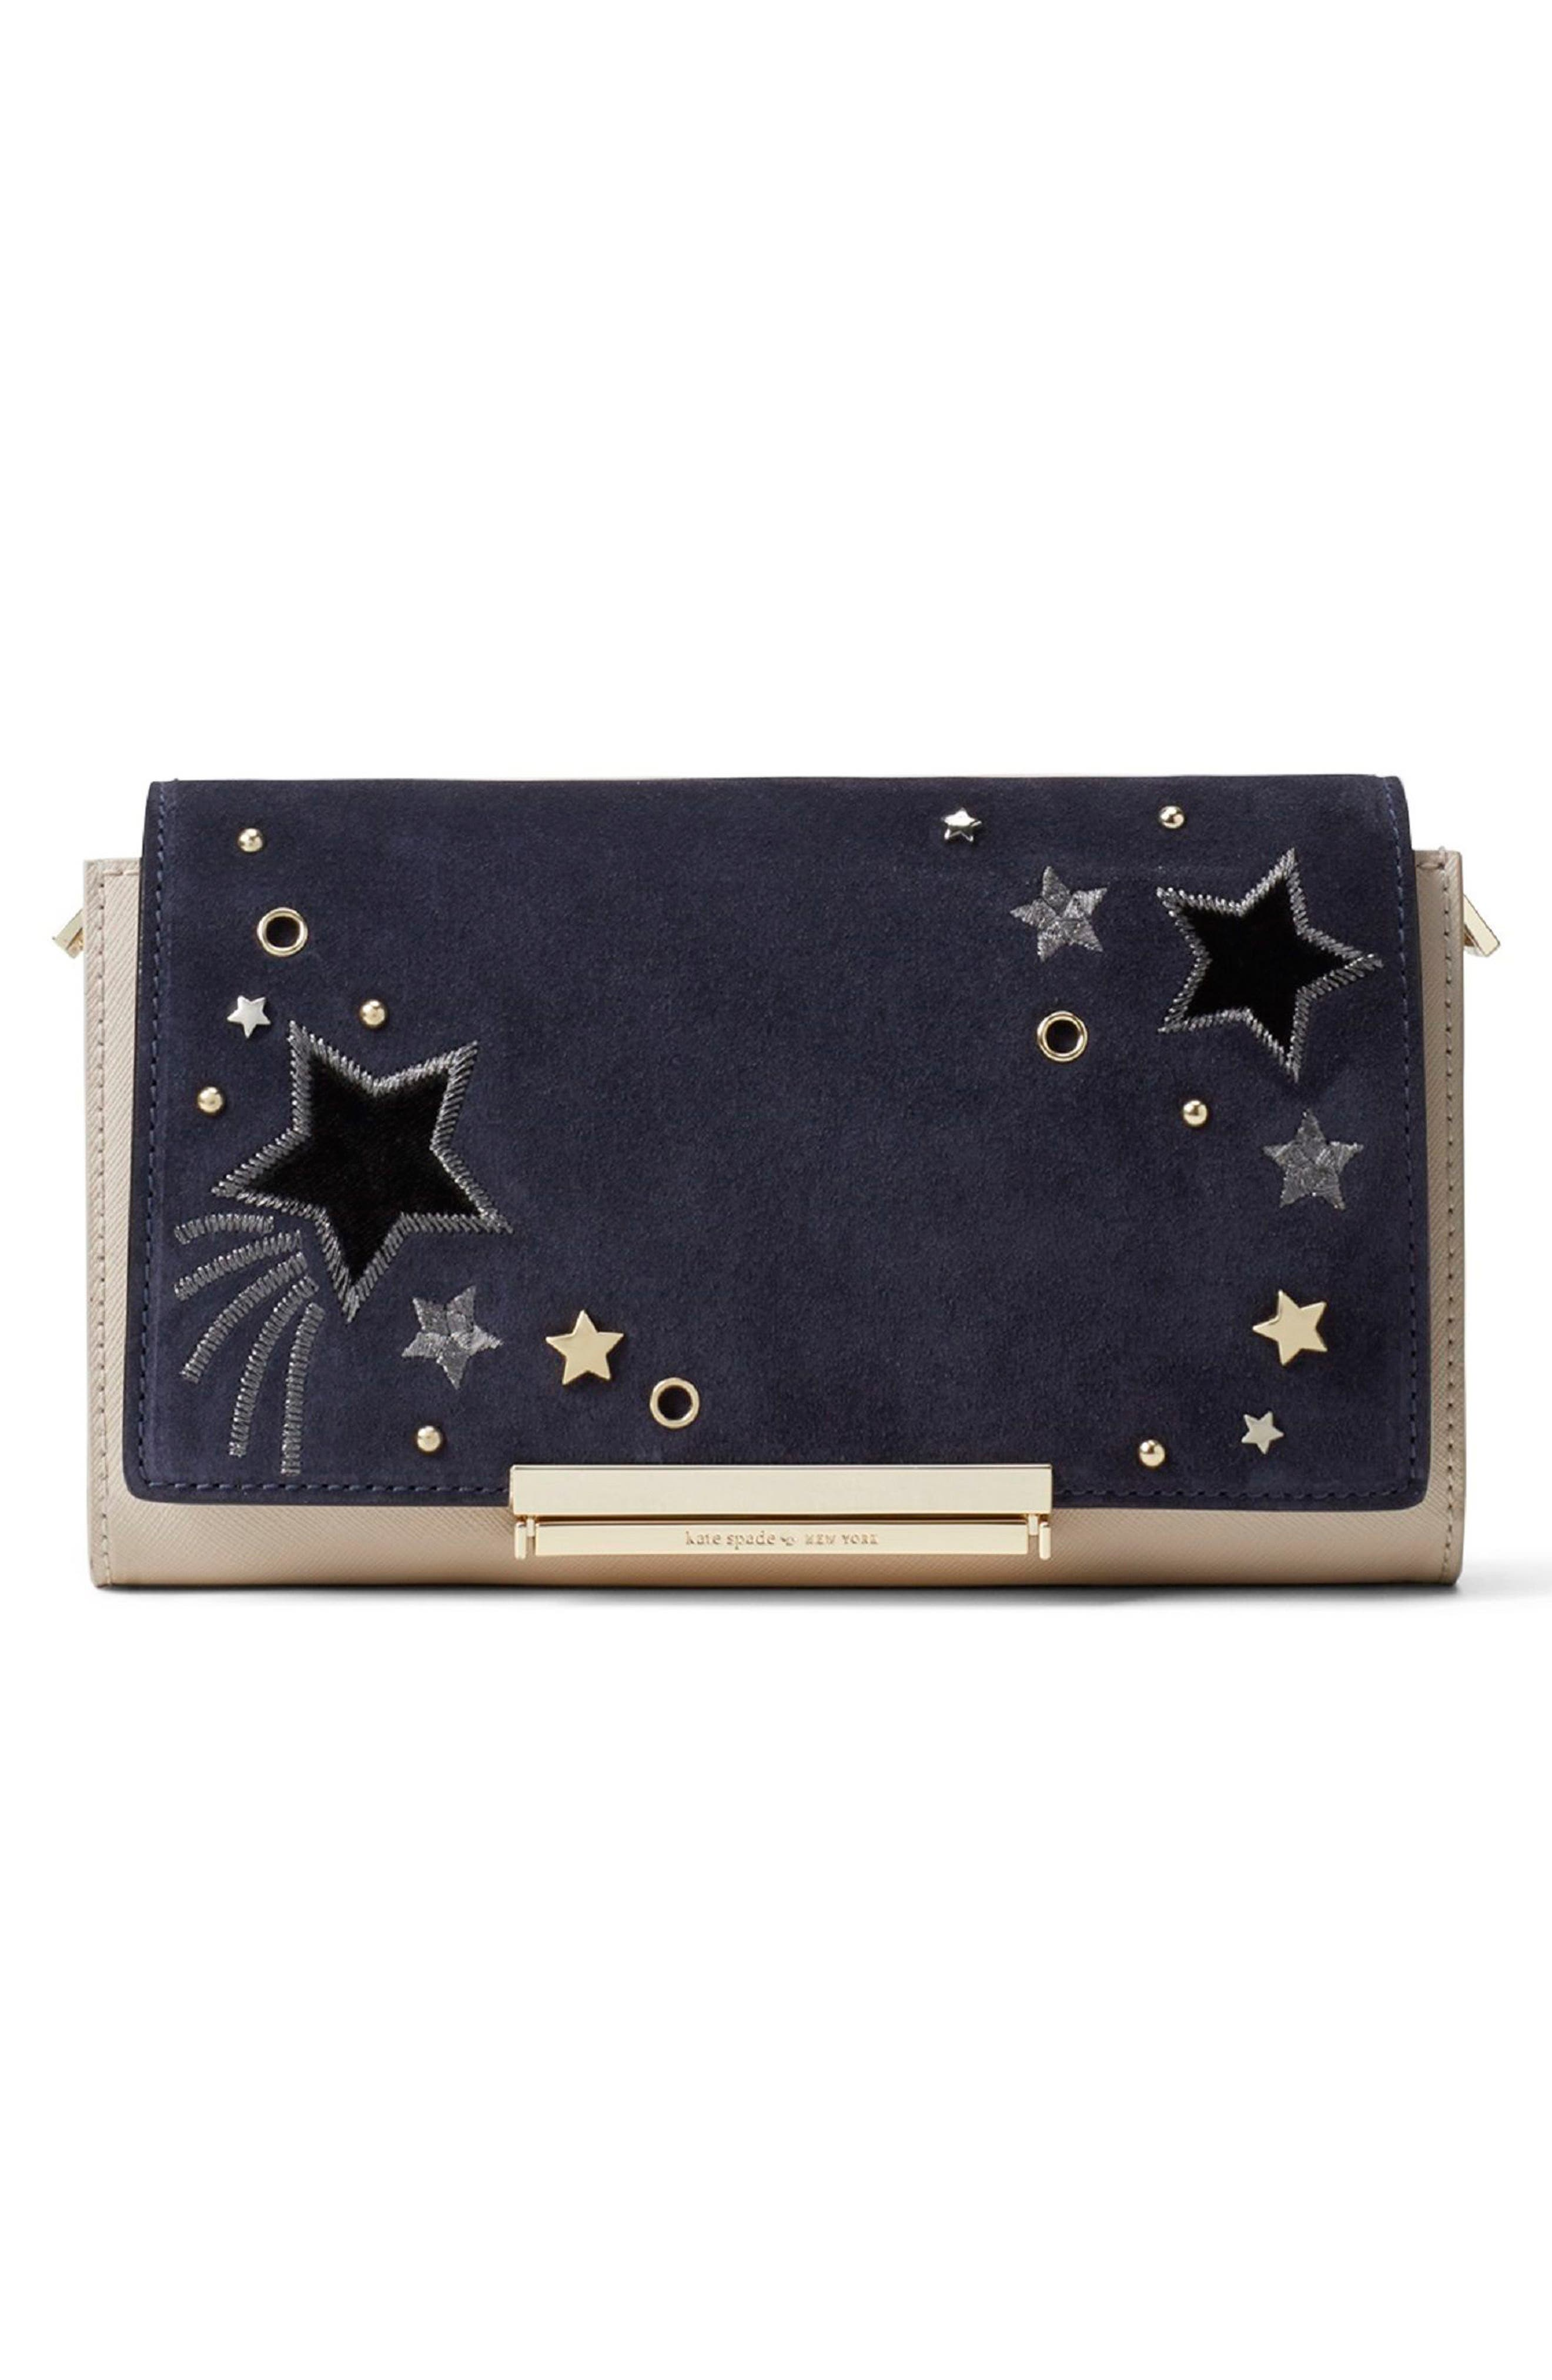 make it mine star embellished snap-on accent flap,                             Alternate thumbnail 3, color,